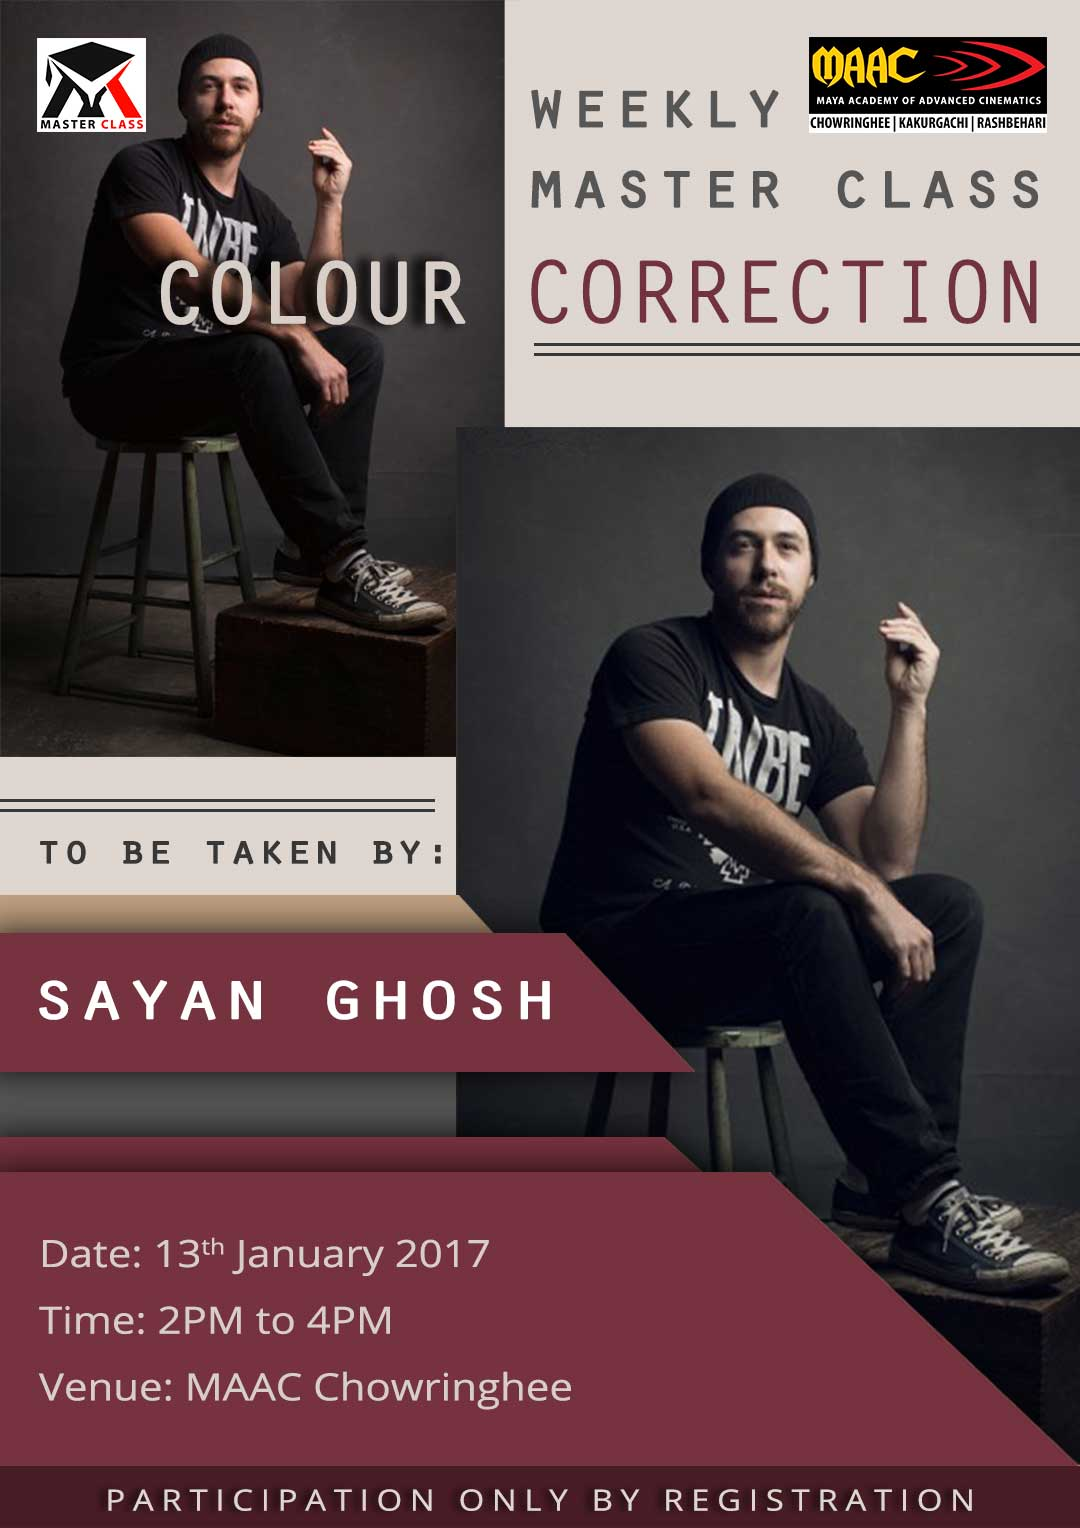 Weekly Master Class on Colour Correction - Sayan Ghosh